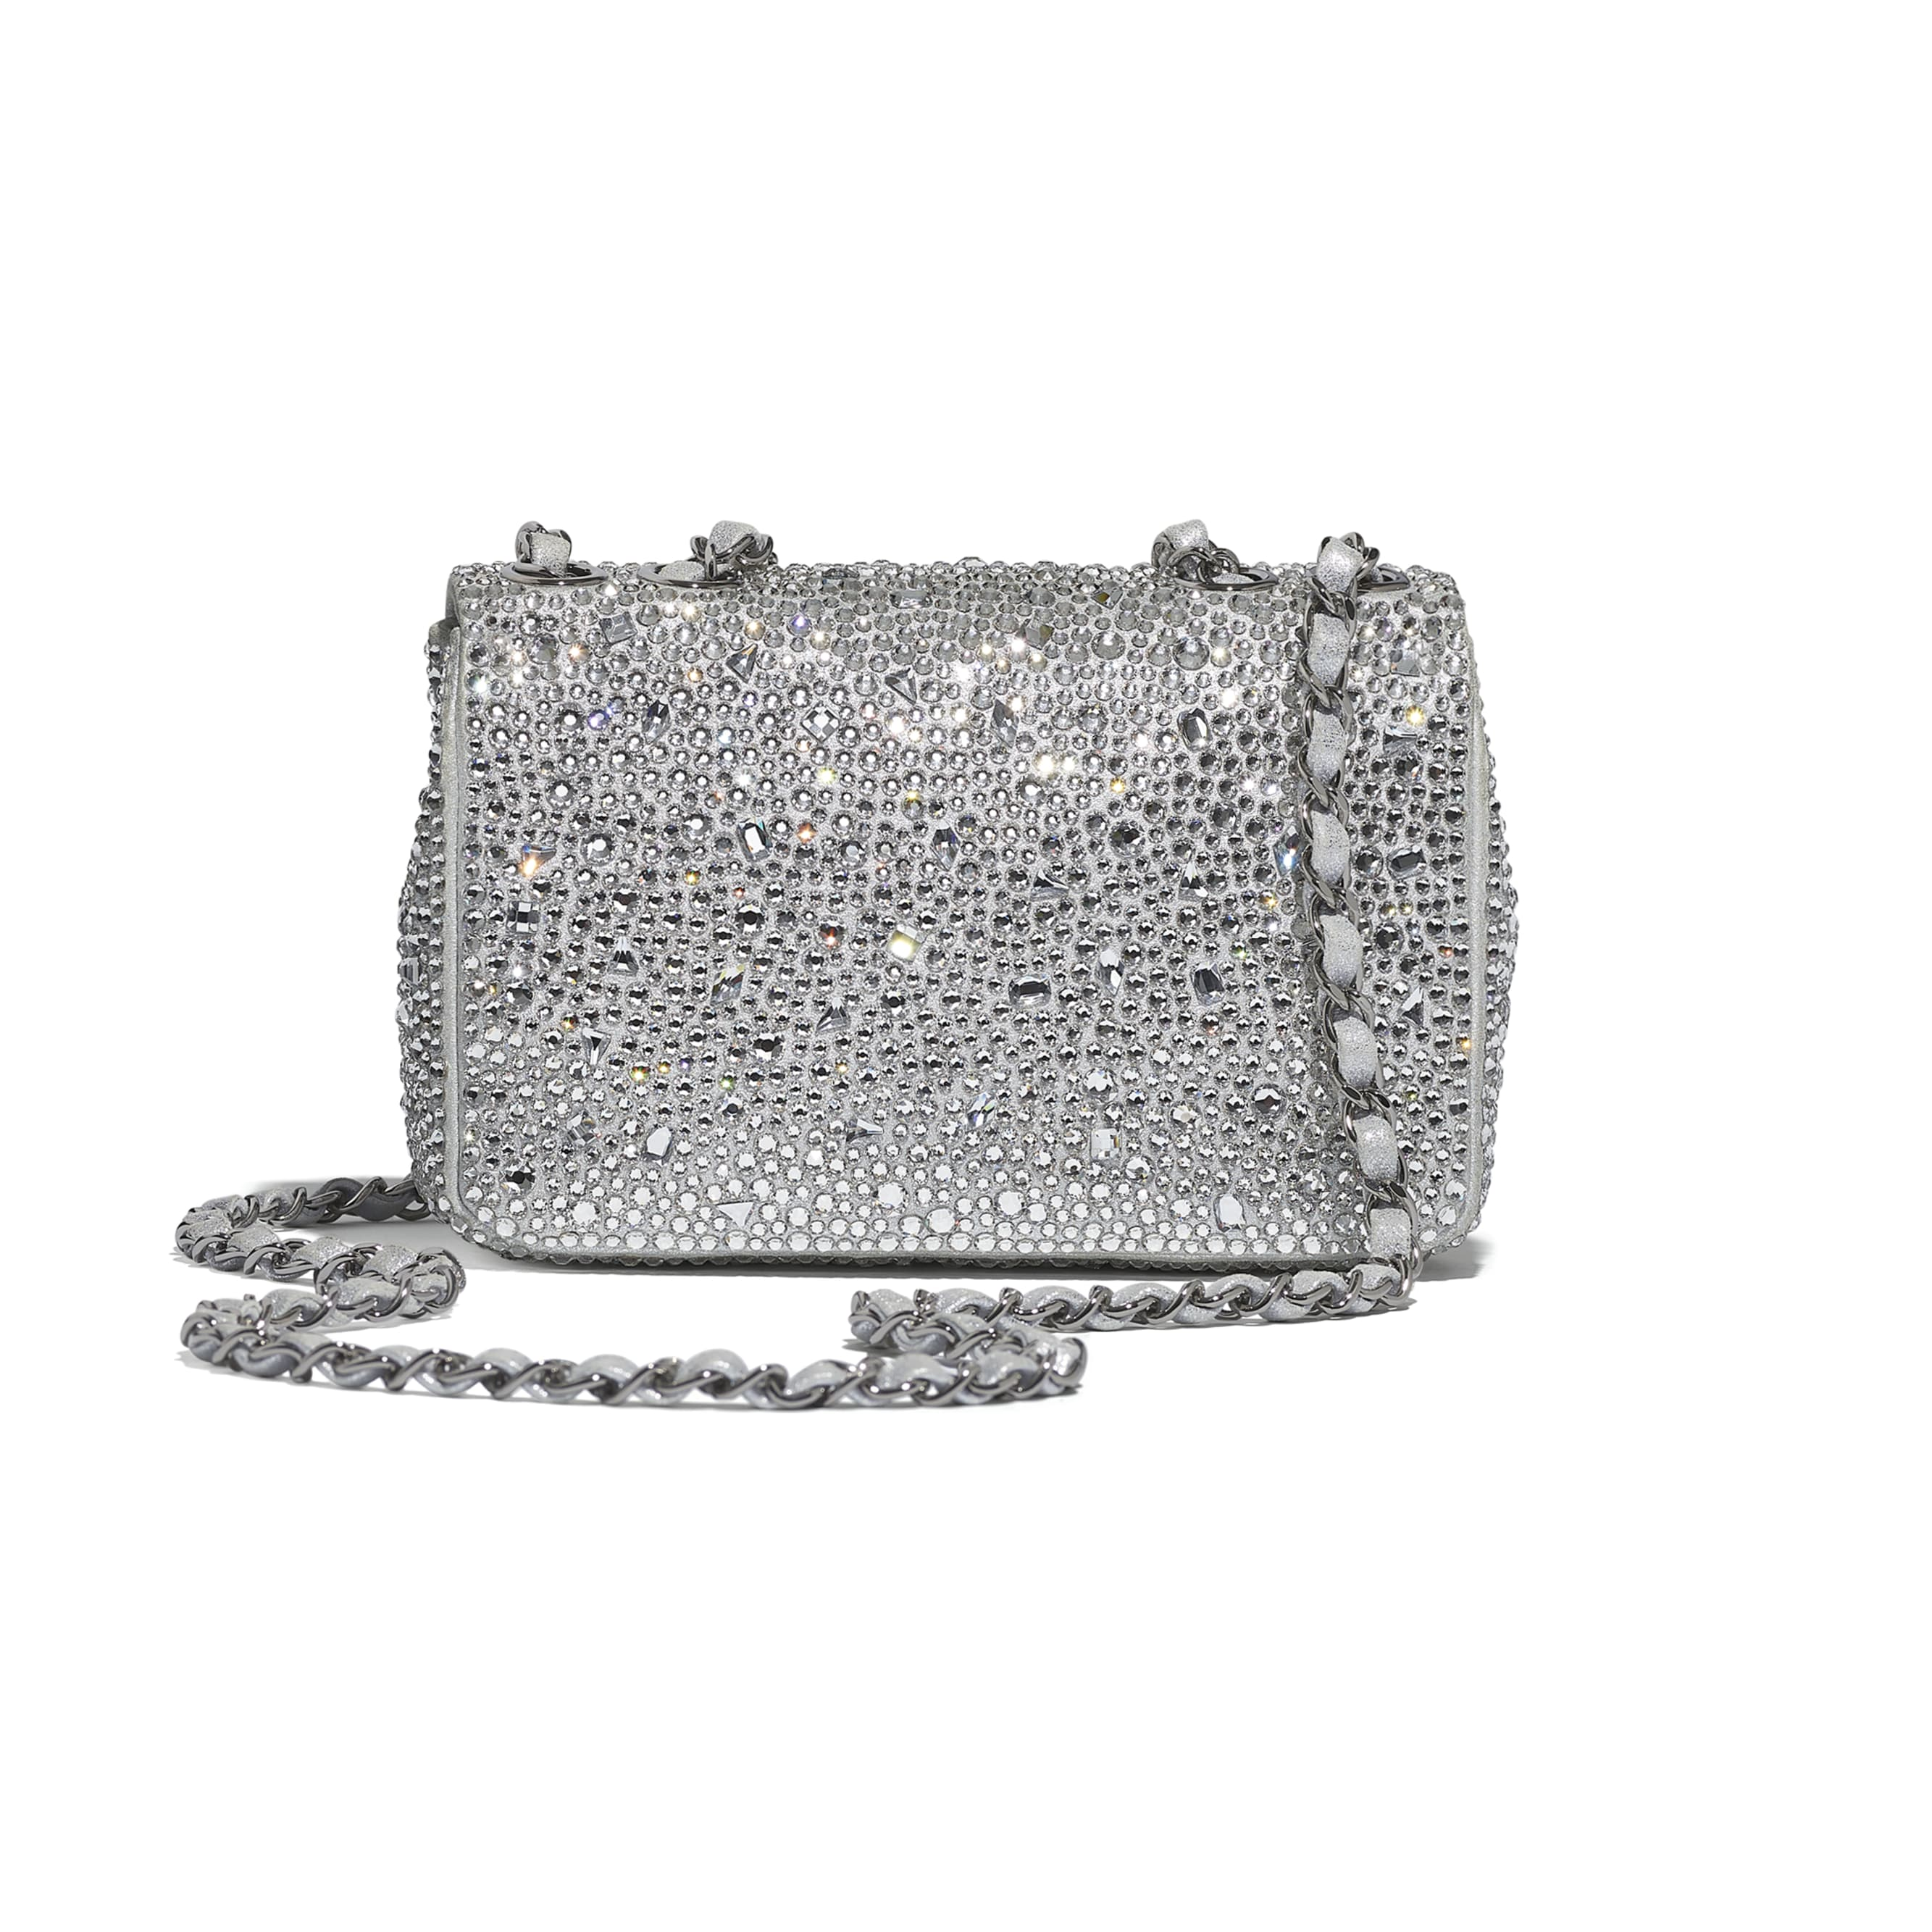 Flap Bag - Silver - Strass, Lambskin & Ruthenium-Finish Metal - CHANEL - Alternative view - see standard sized version